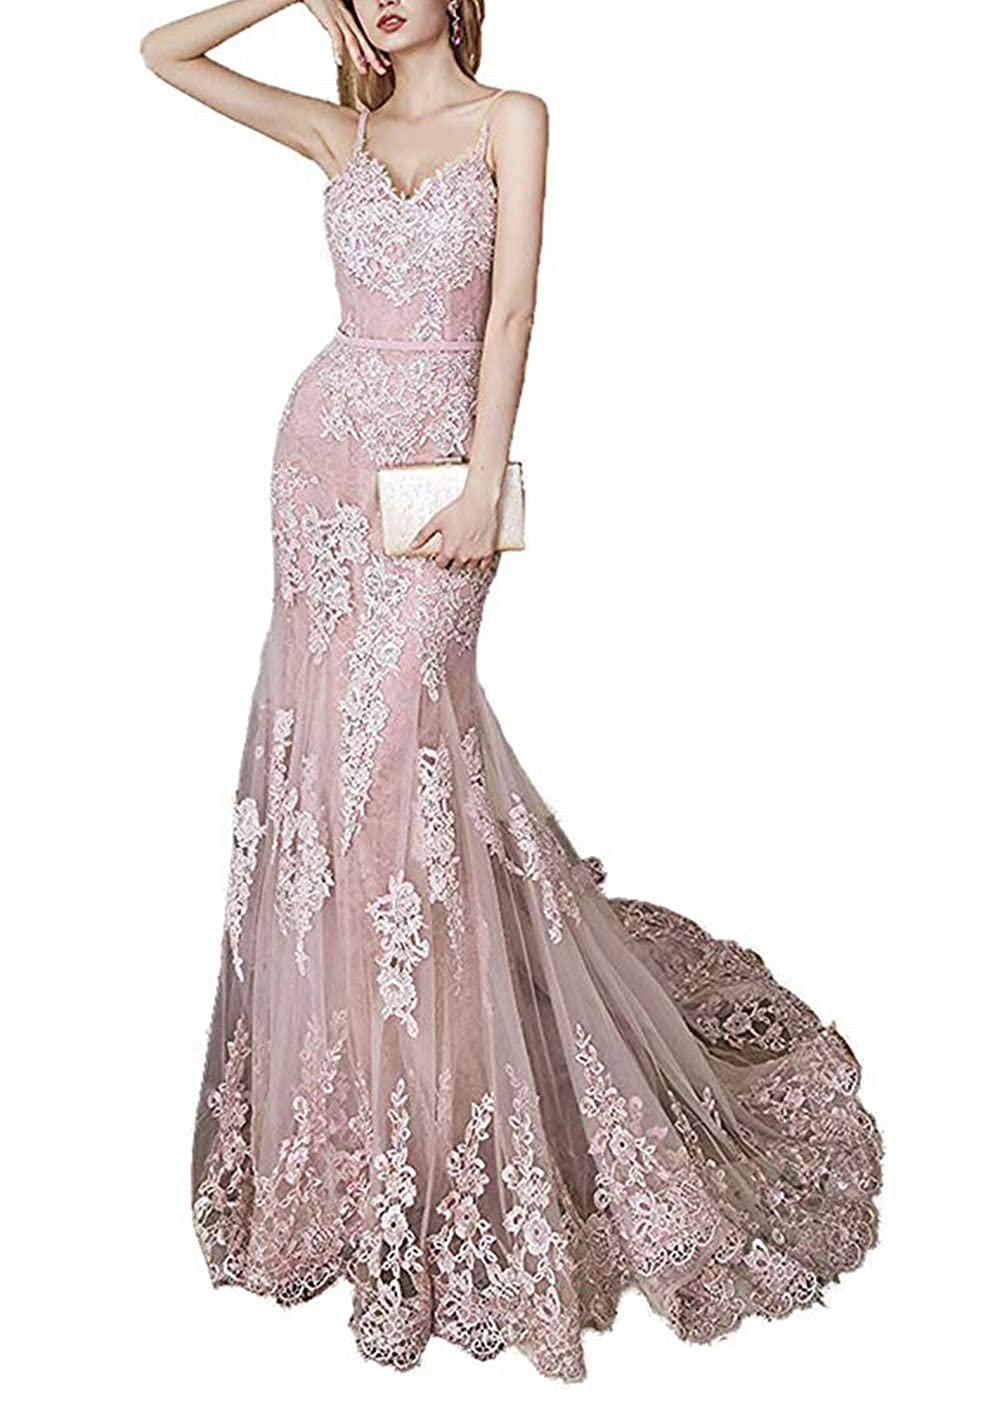 bluesh Pink formalmall Women's Spaghetti Straps Mermaid Prom Dresses Long 2019 Lace Celebrity Wedding Gown with Train